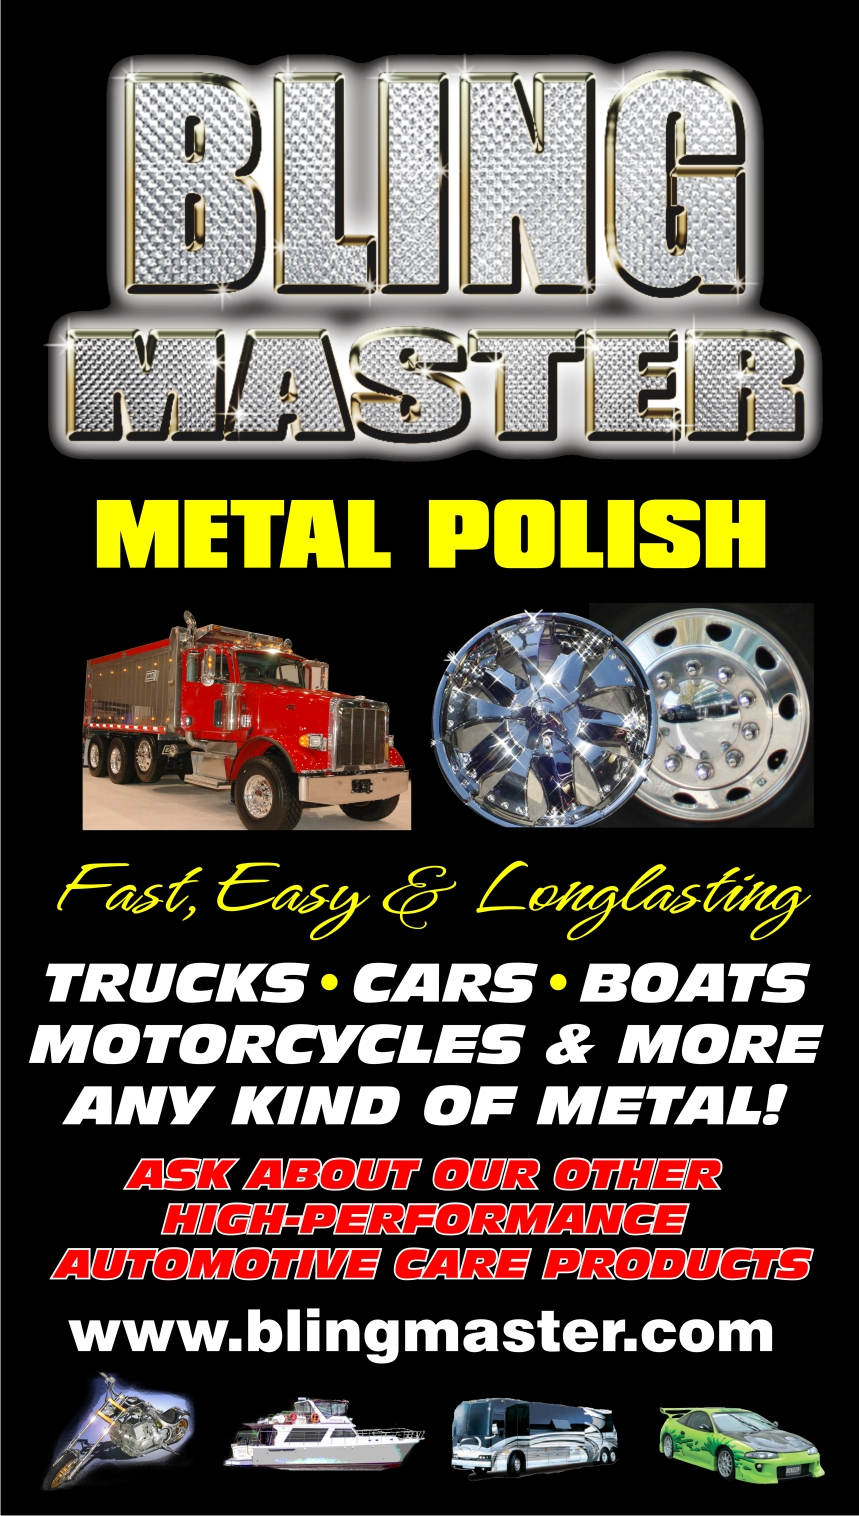 Blingmaster Polish